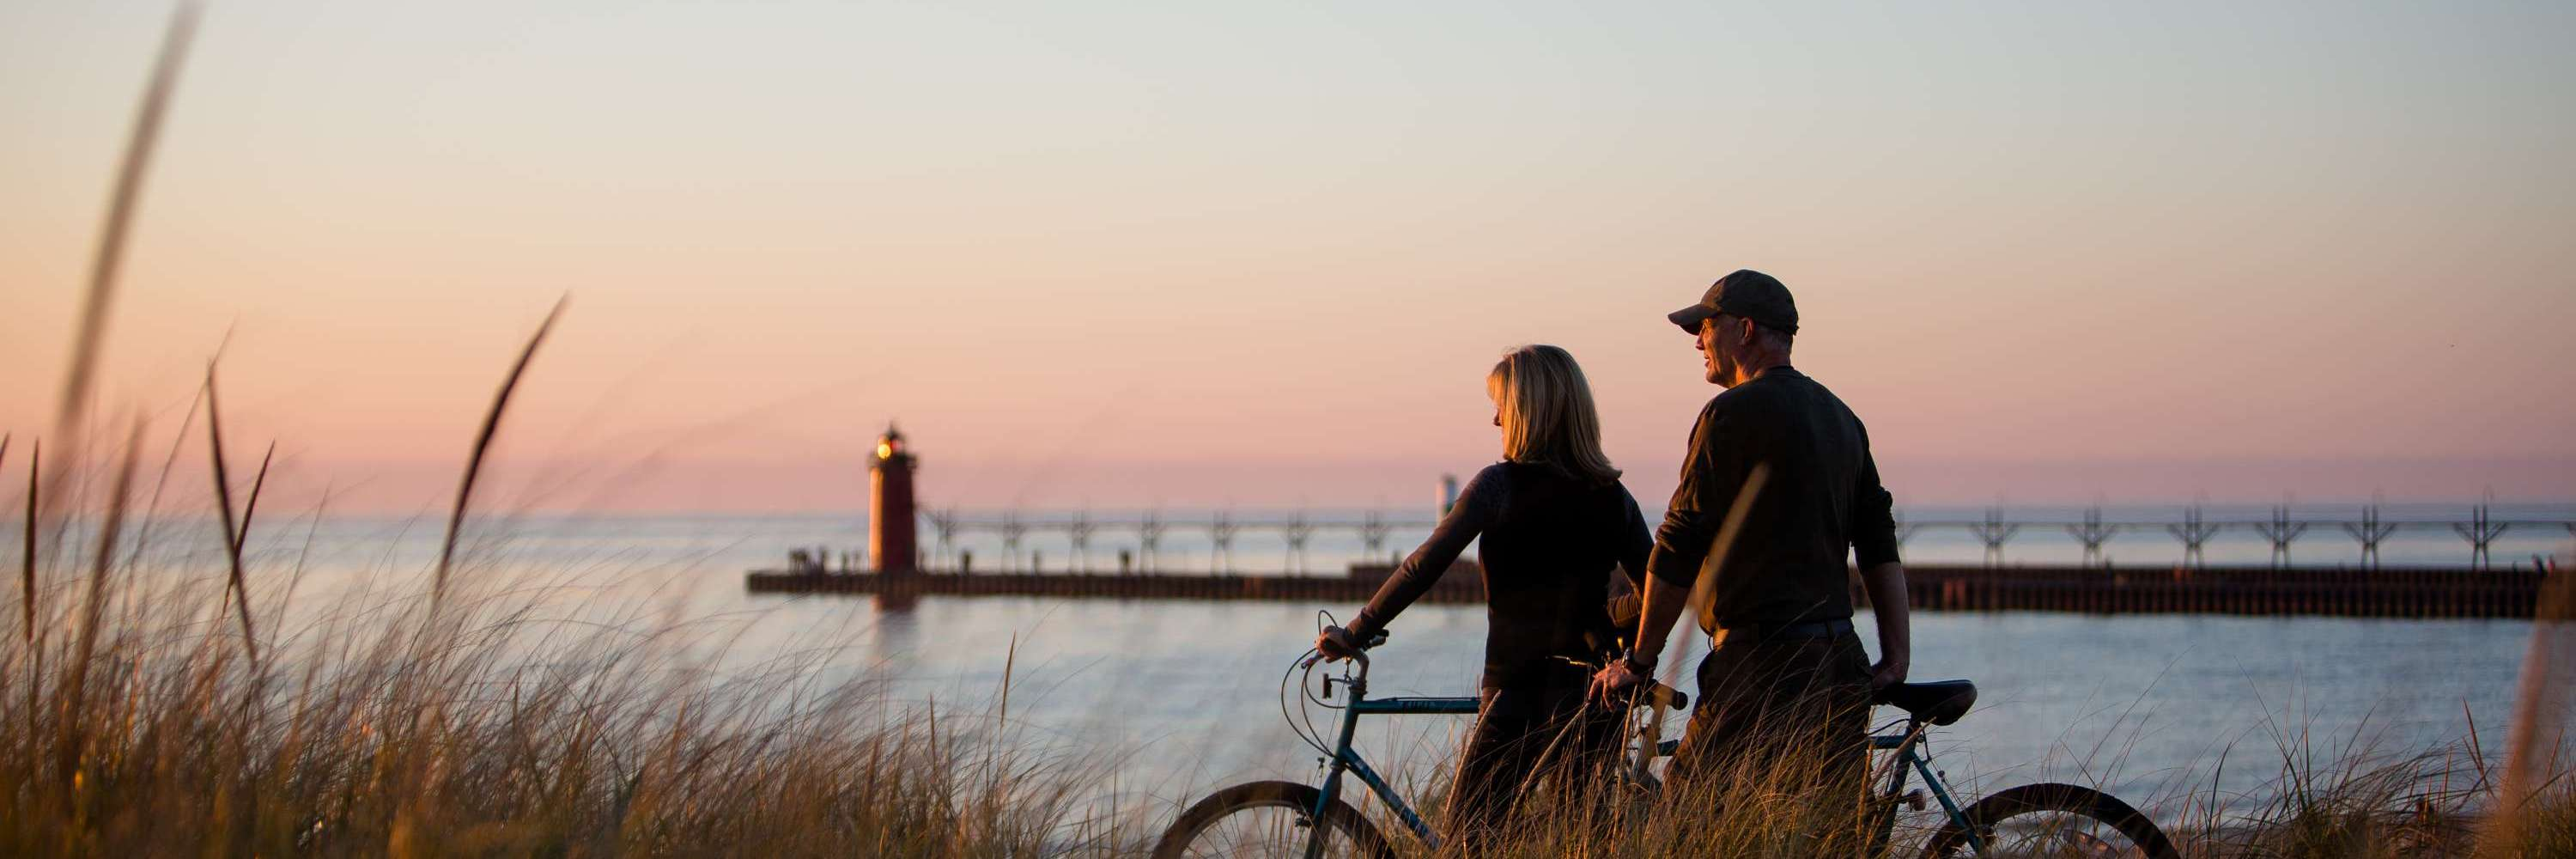 Biking in South Haven